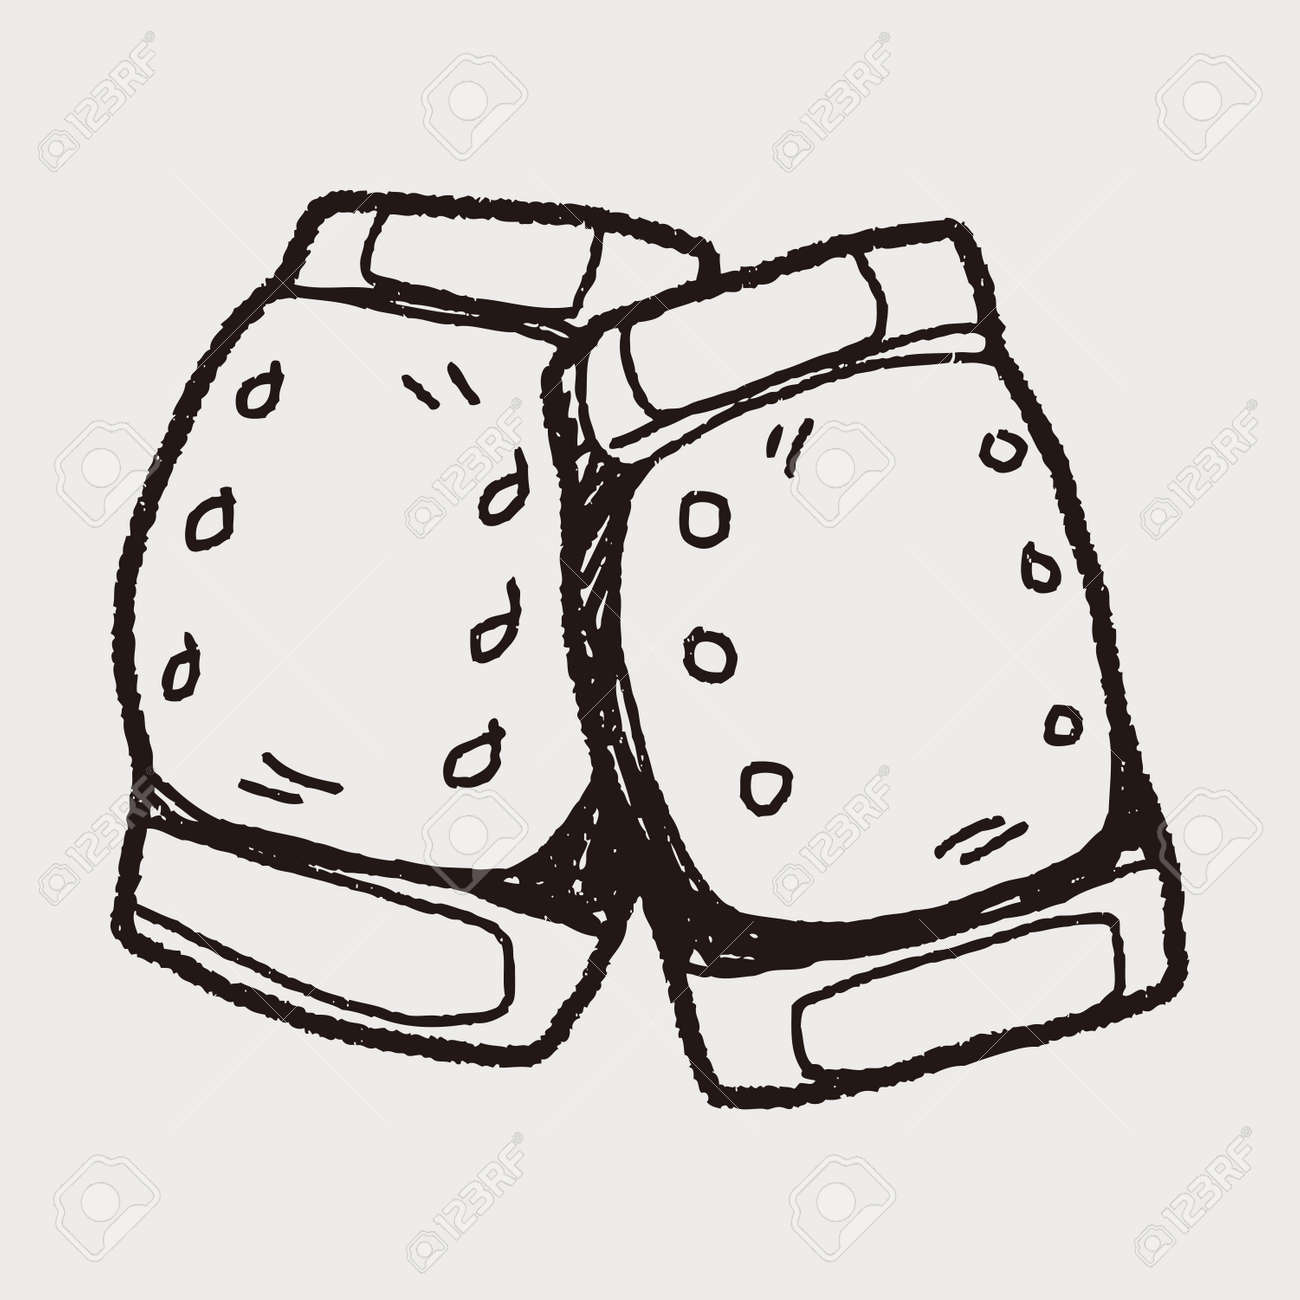 Knee Pads Doodle Royalty Free Cliparts Vectors And Stock Illustration Image 38564317